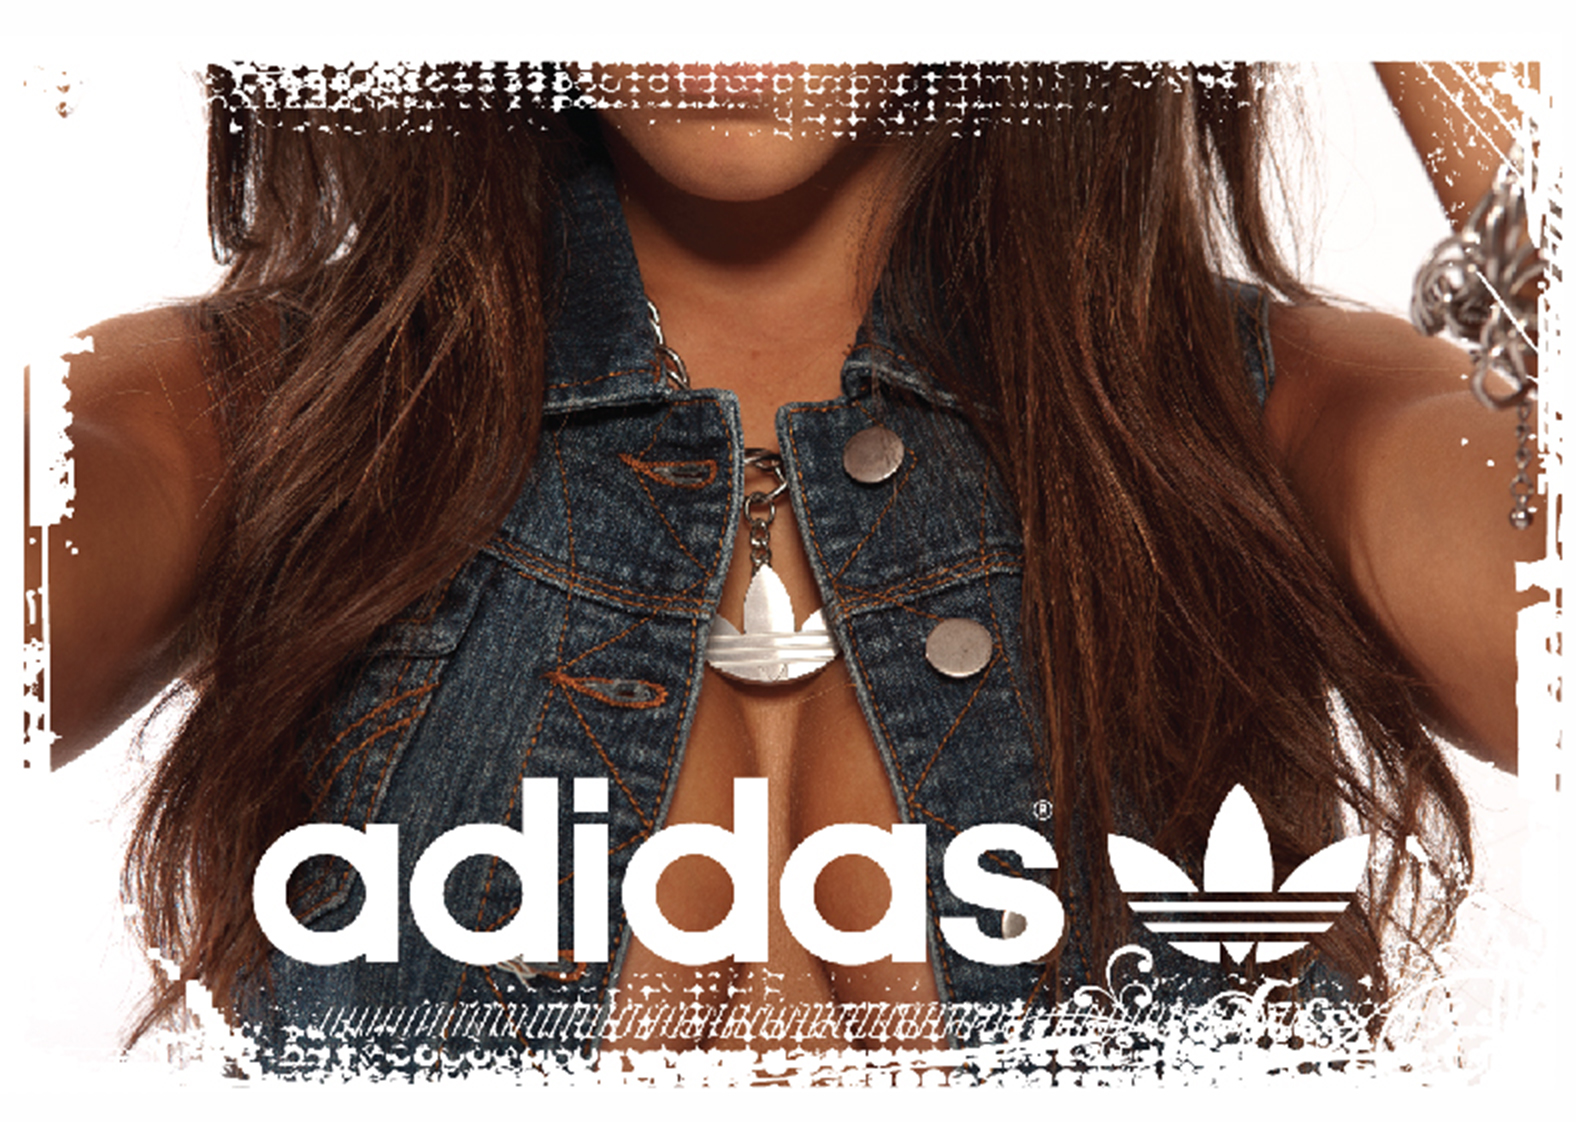 Adidas Originals T-Shirt Girl Fashion Sexy